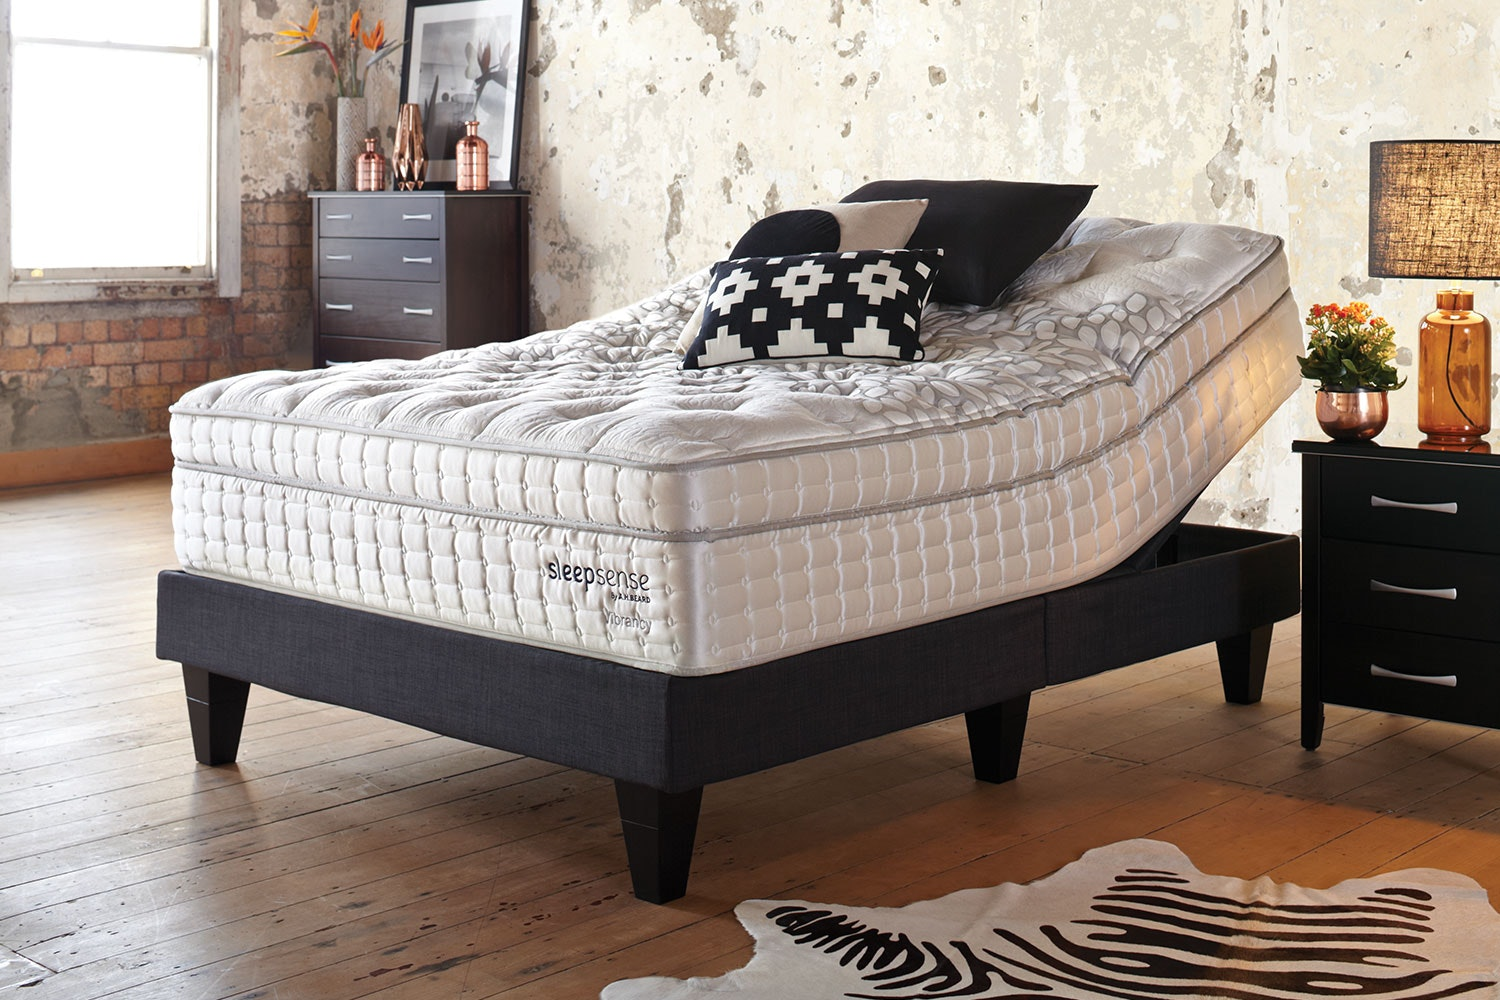 Vibrancy Queen Mattress with Genius Adjustable Base by Sleepsense